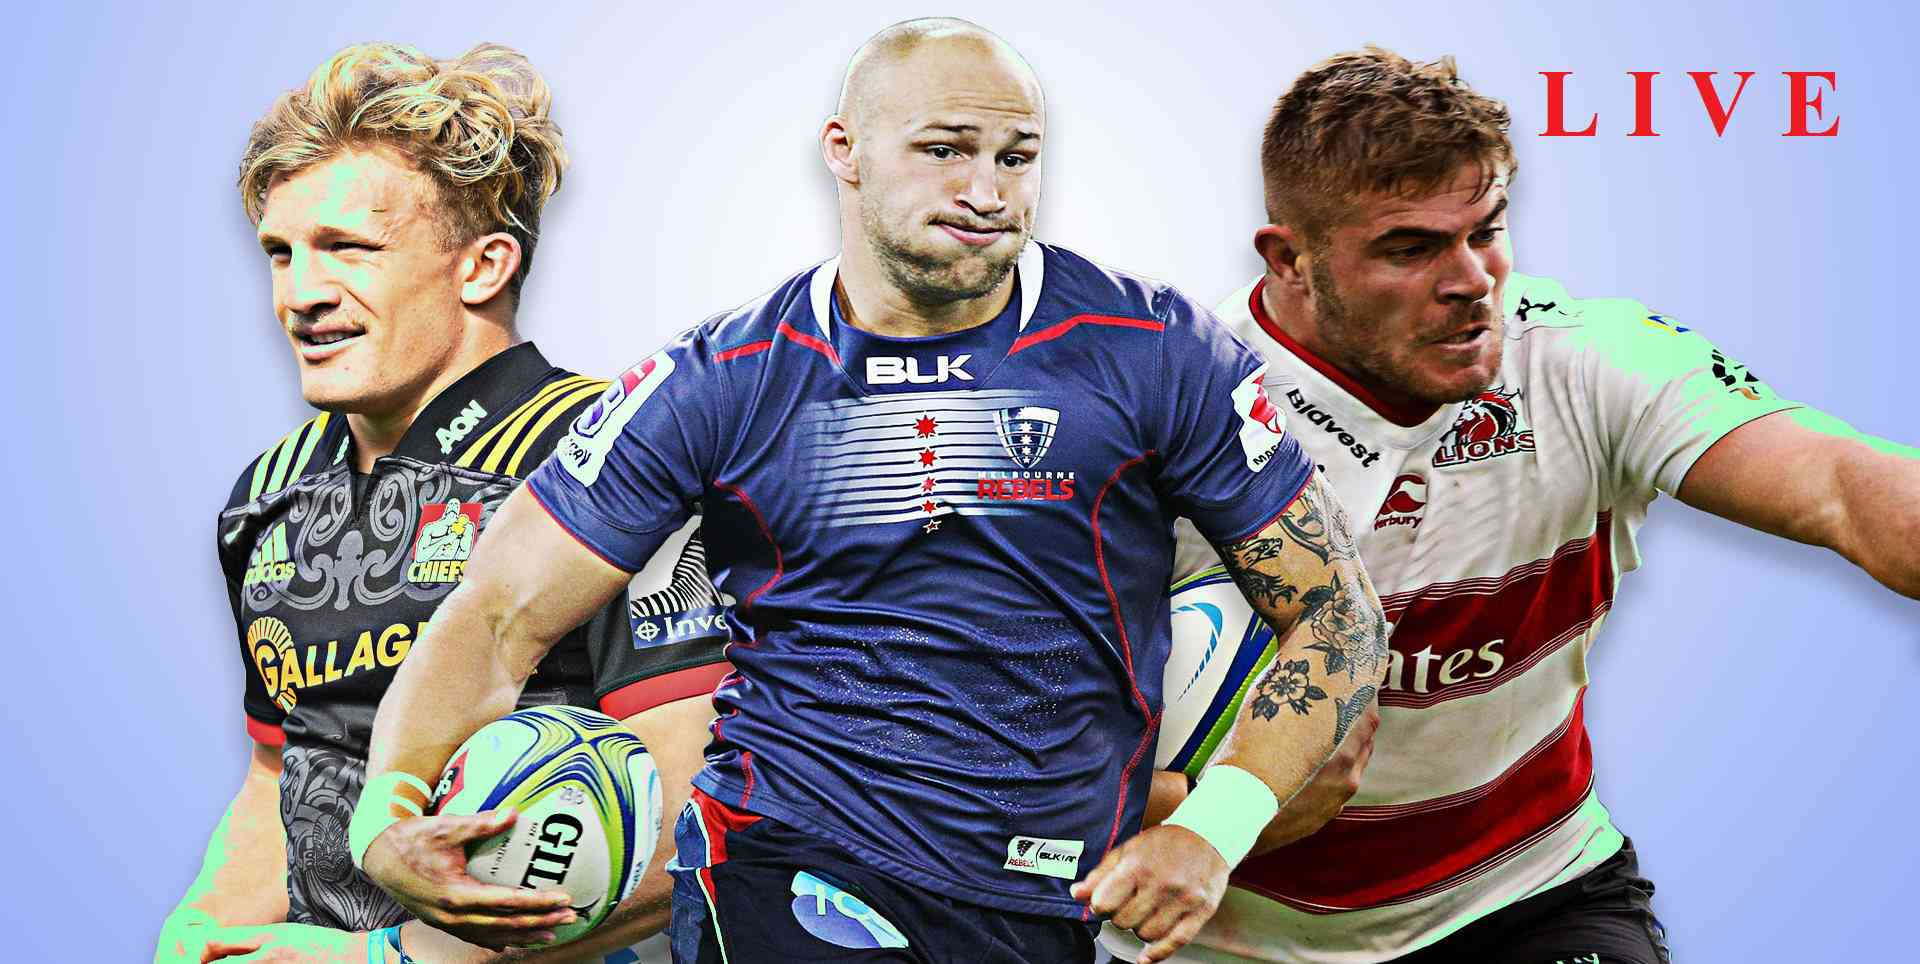 edinburgh-vs-harlequins-stream-online